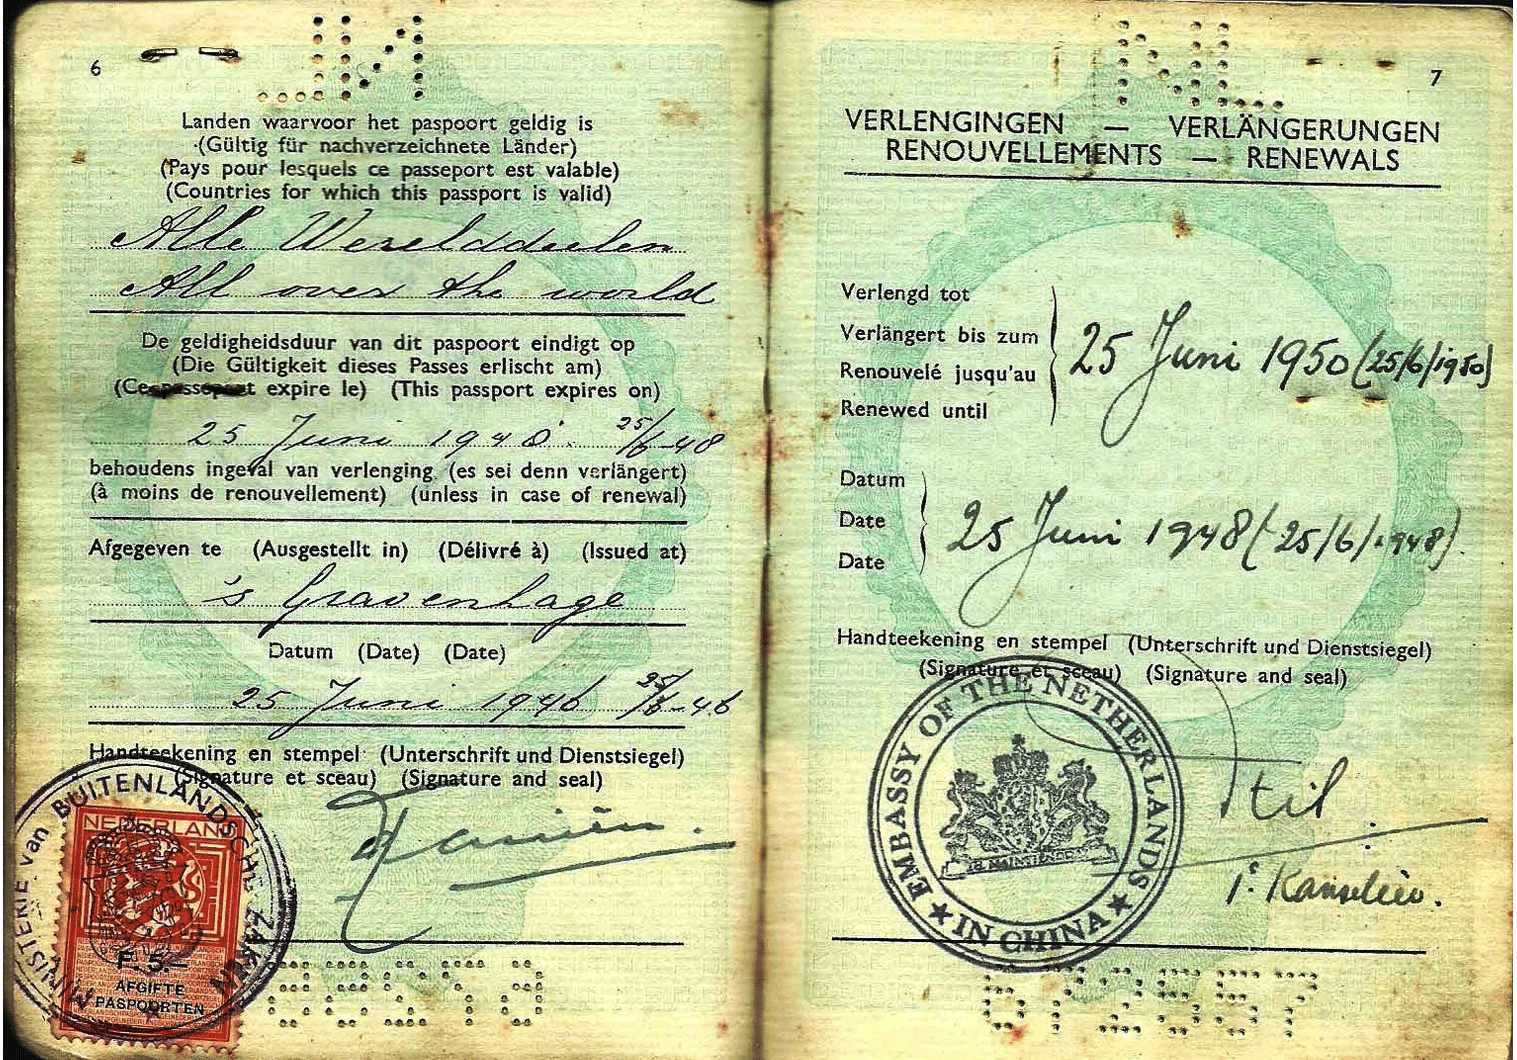 WW2 Dutch Jewish passport